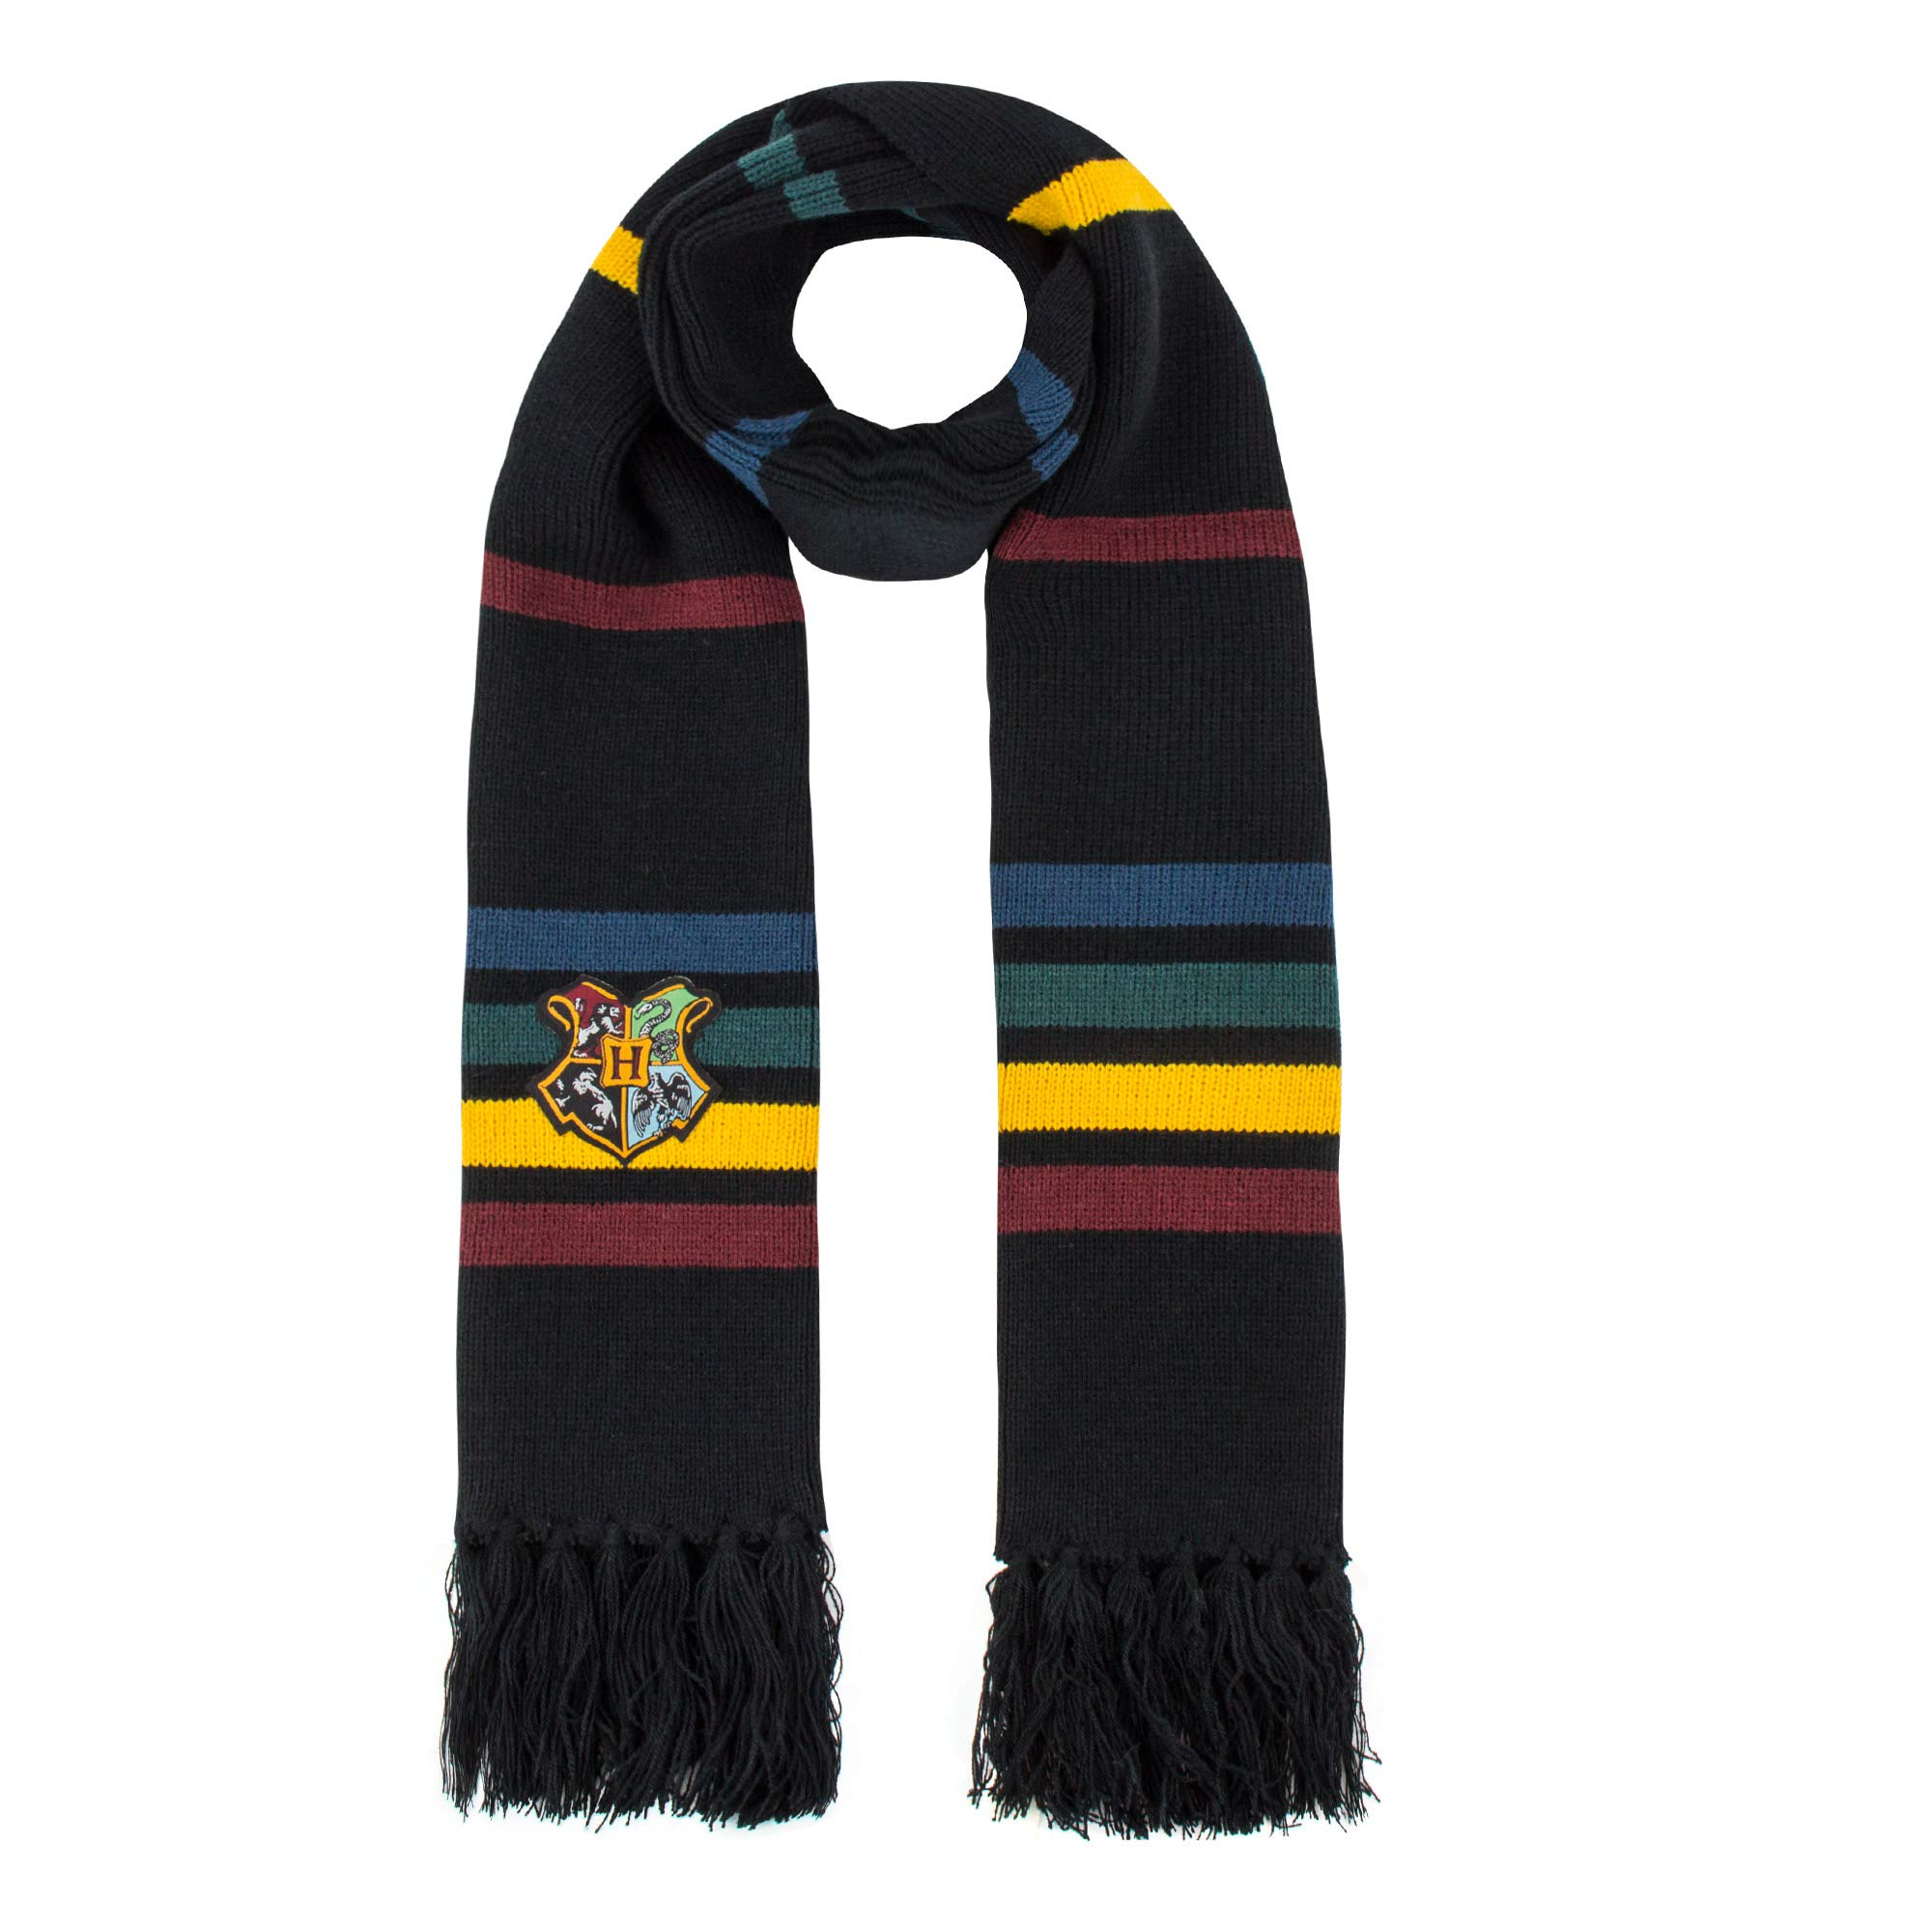 Harry Potter Scarf - Official - Ultra Soft Knitted Fabric - by Cinereplicas (Hogwarts)